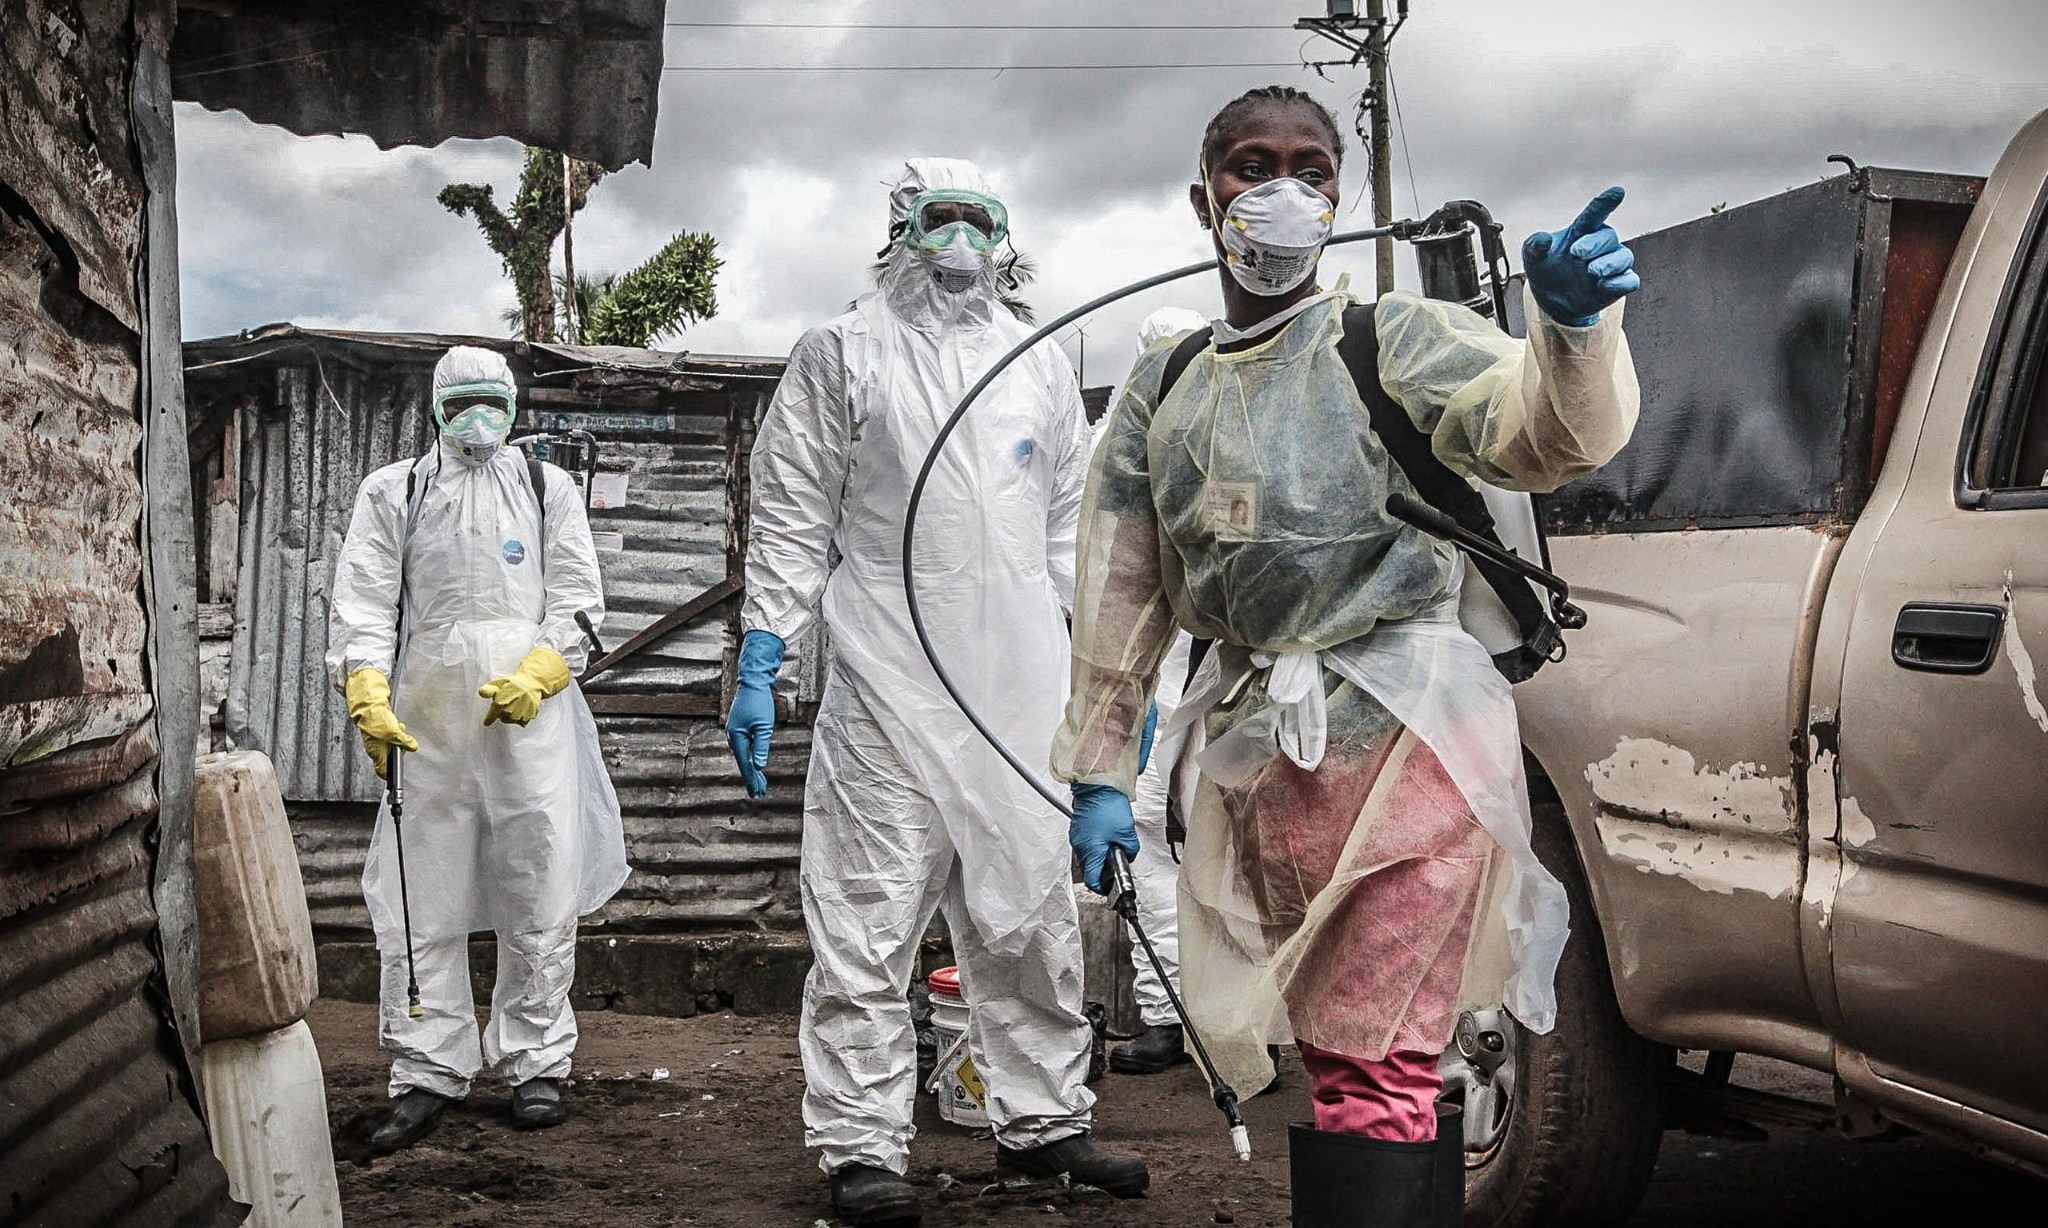 Oxfam: World must do more to stop Ebola becoming 'disaster of our time'